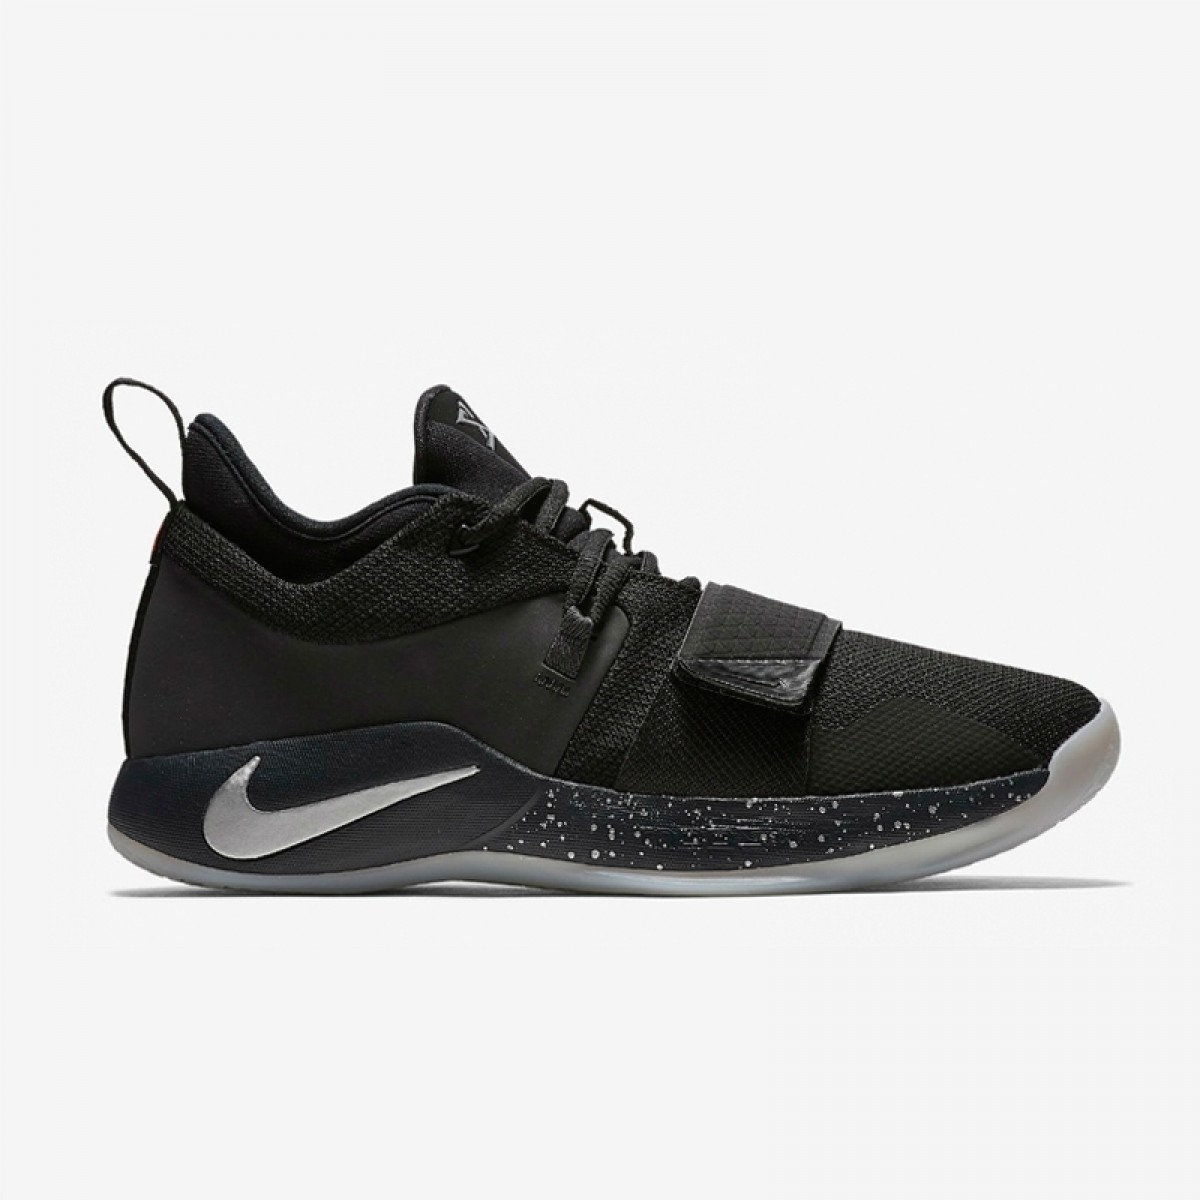 f2dbe6de27f7 Buy Nike PG2.5  Anthracite  Basketball shoes   sneakers